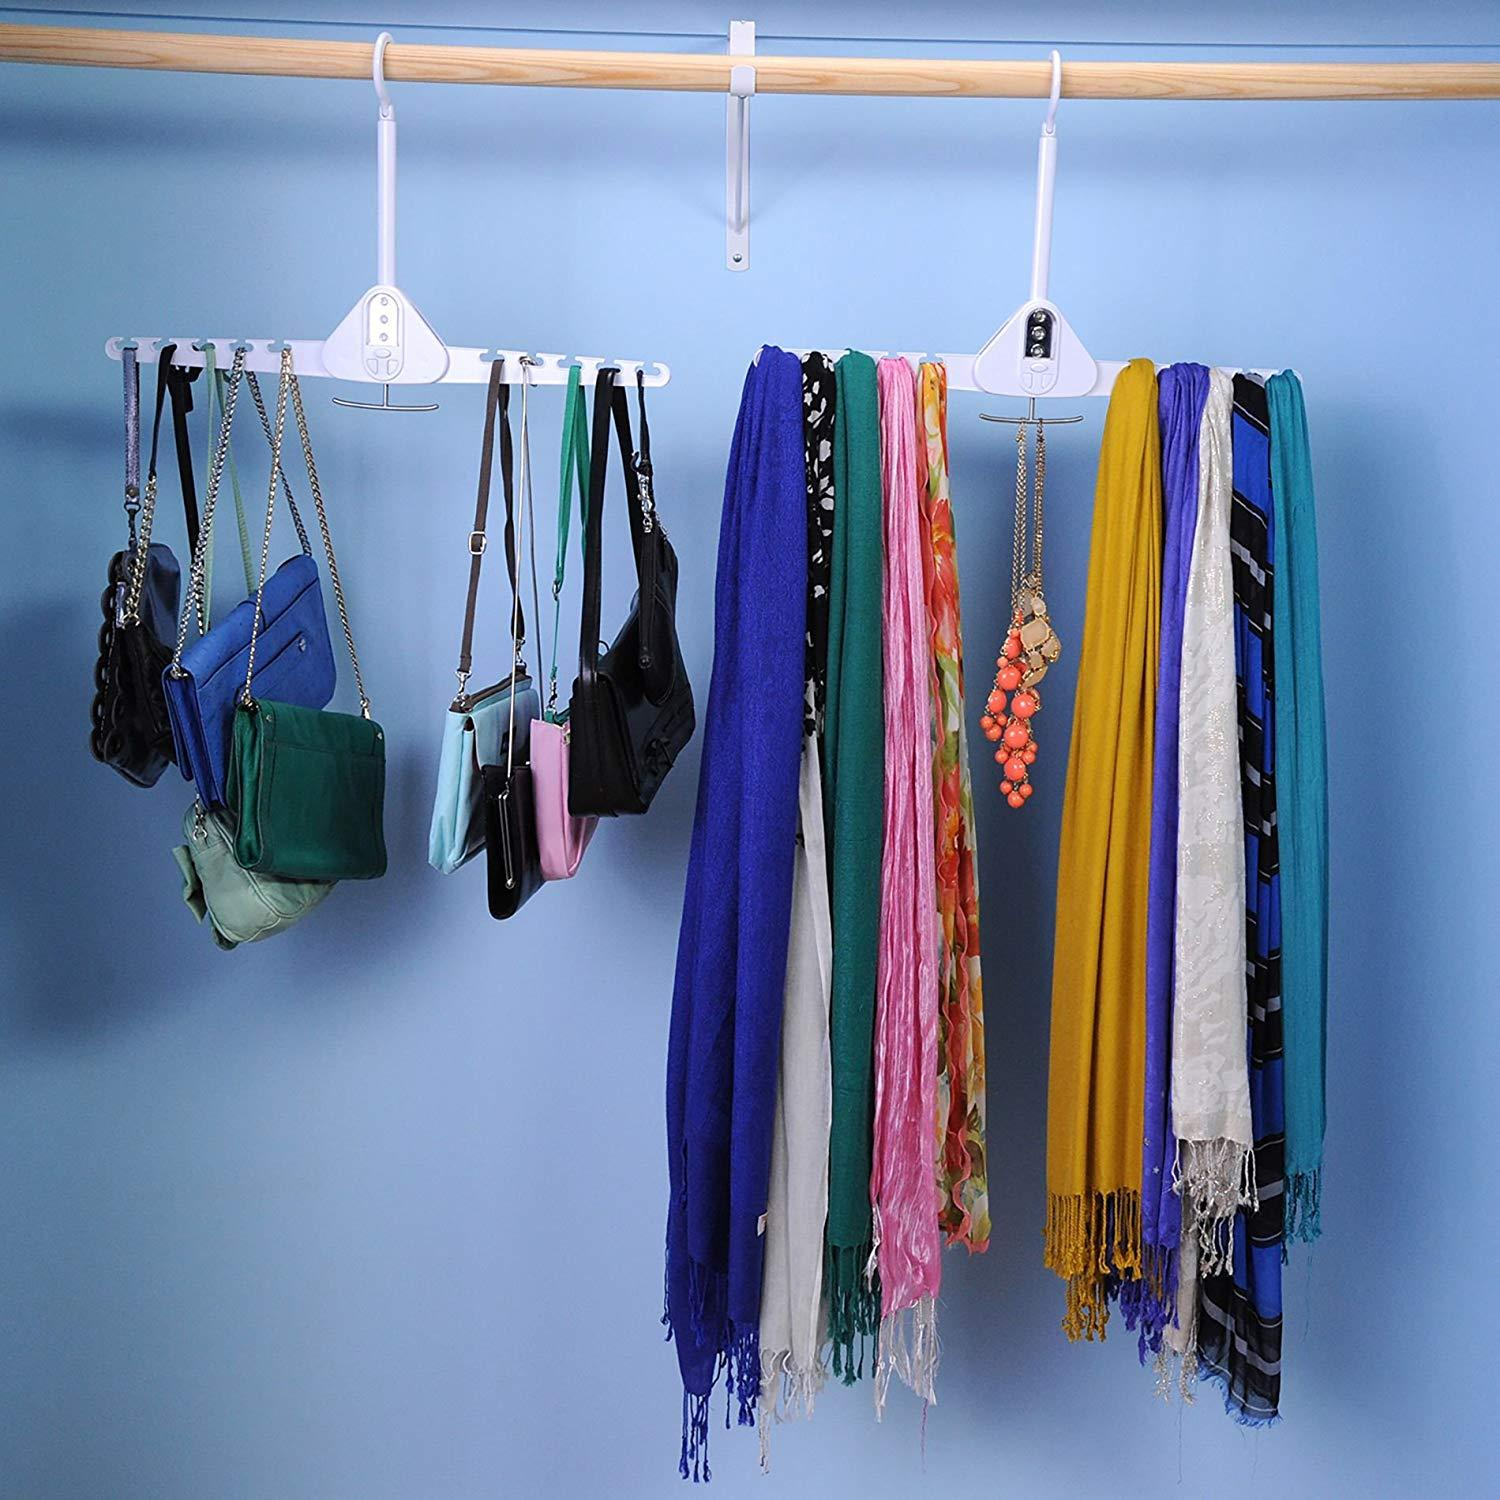 Dual Hanger by Wonder Hanger - Holds More Than 10 Garments